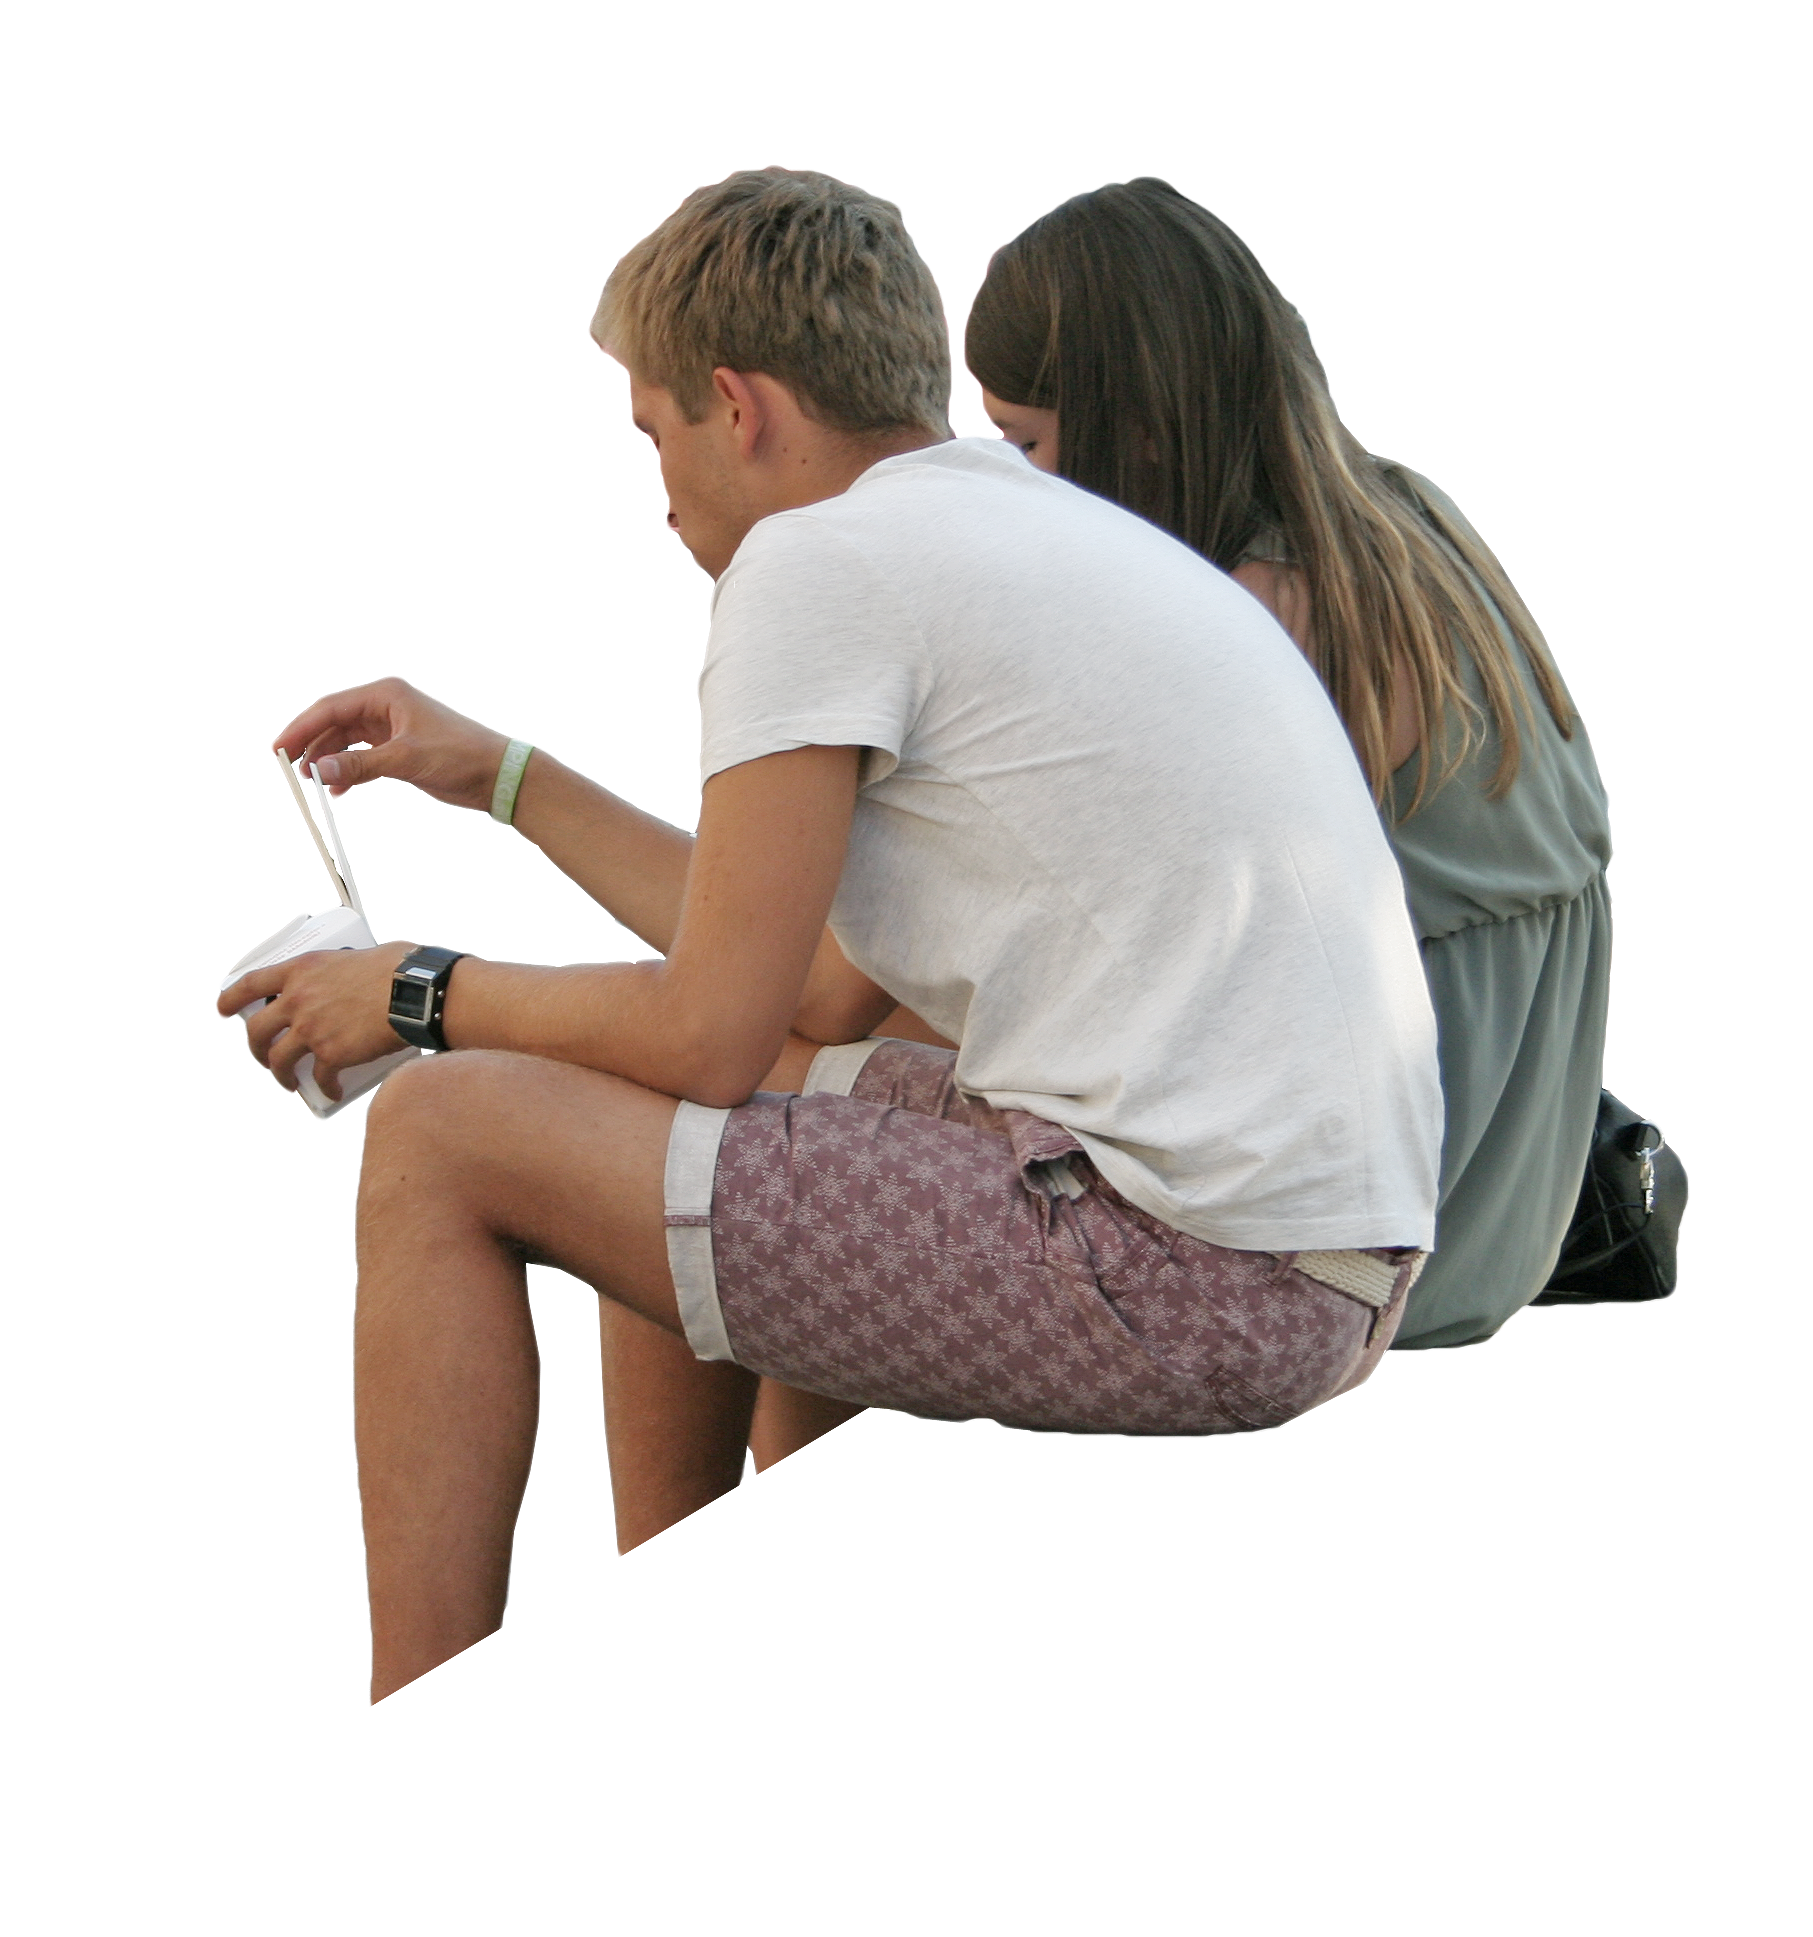 Couple sitting png. Image result for people